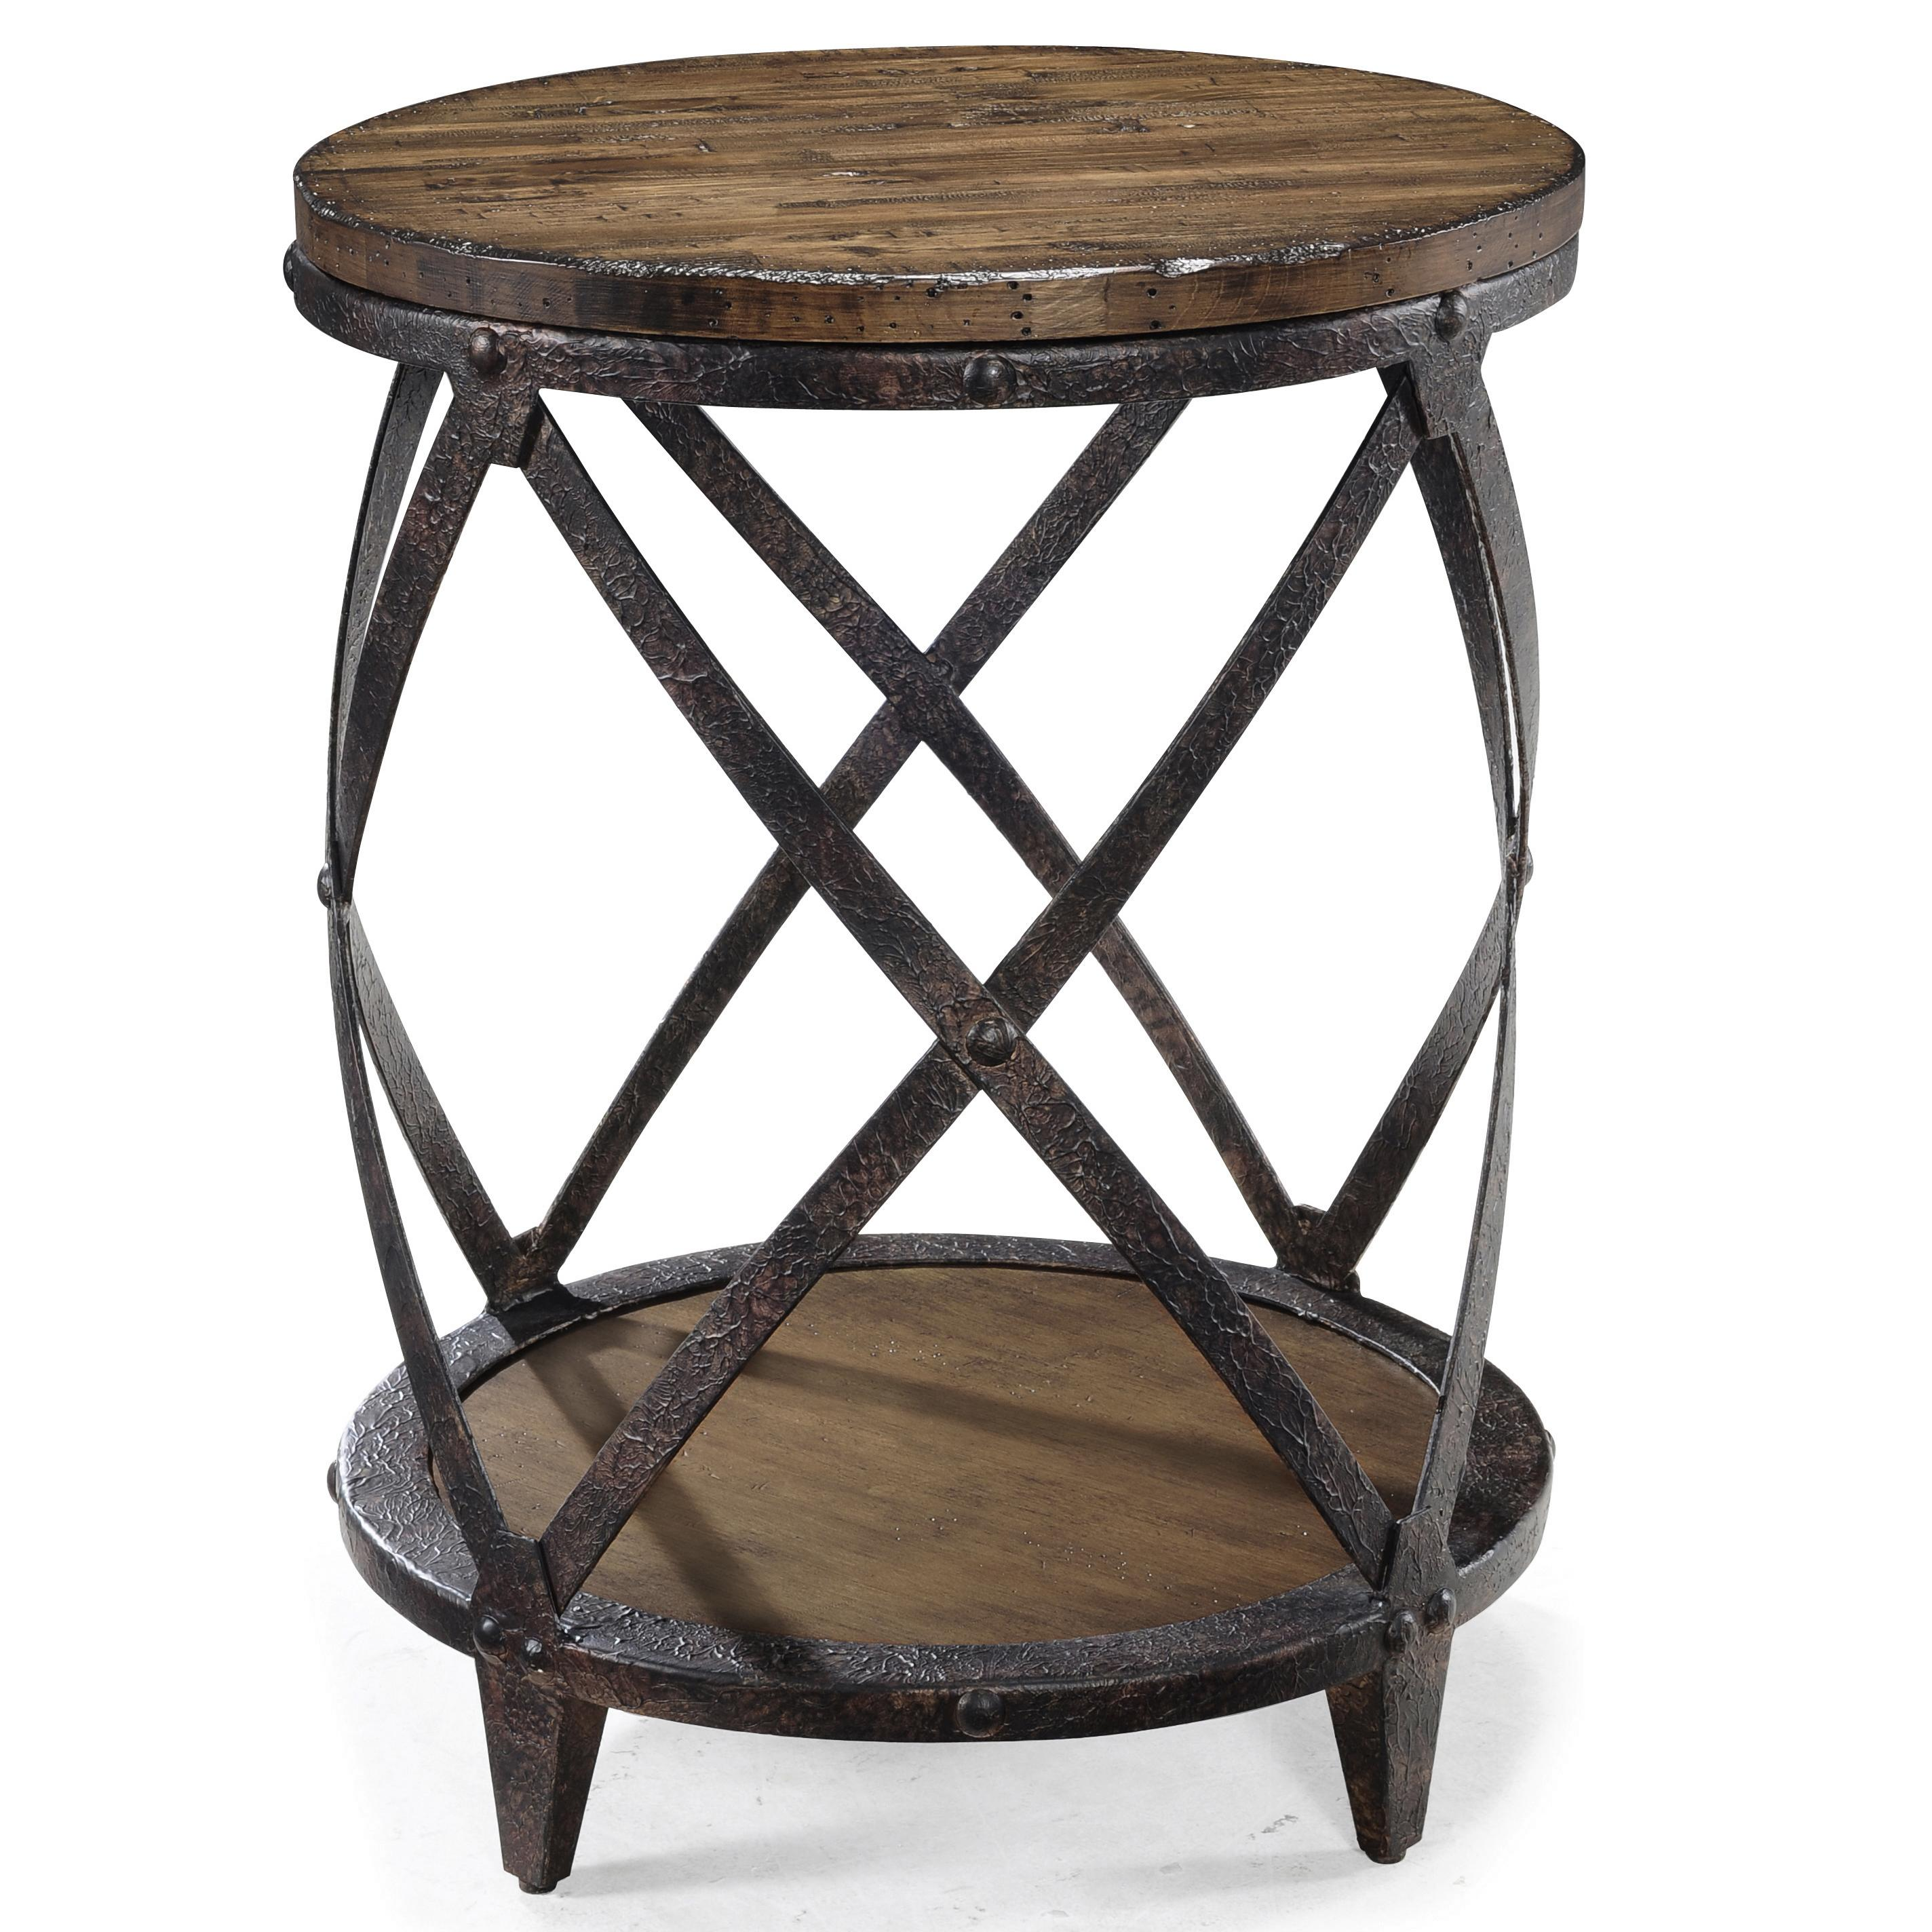 round accent end table with rustic iron legs magnussen home products color pinebrook small pine target patio pedestal bird stainless steel kitchen cart safavieh couture pub tops